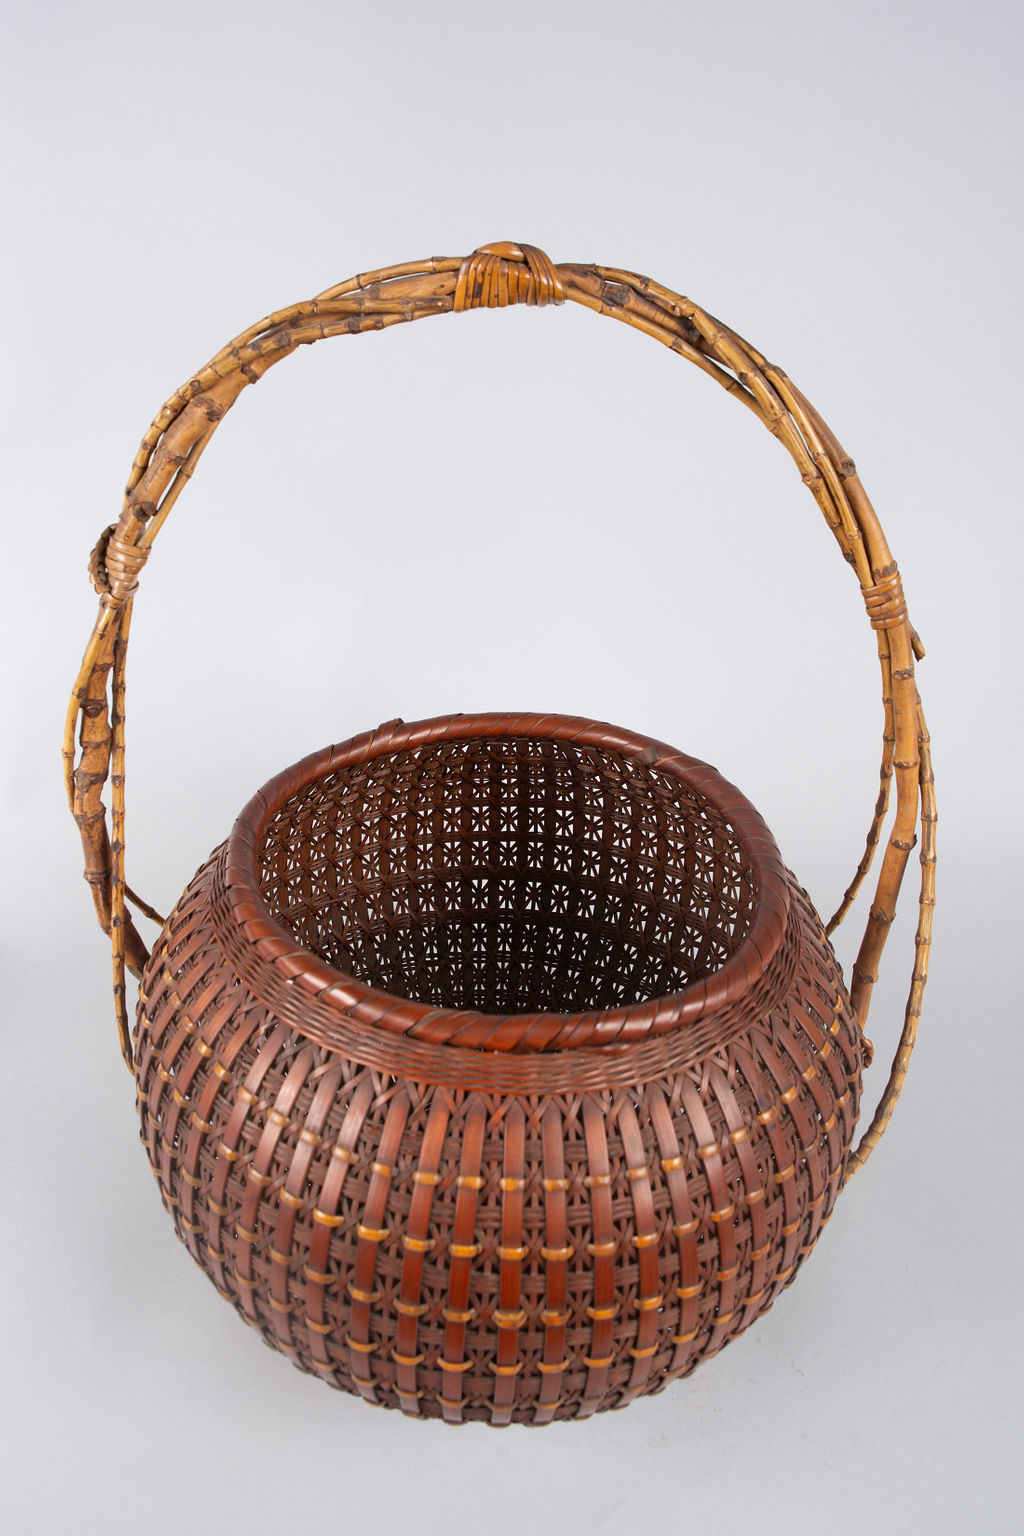 Japanese Ikebana (Flower Arranging Basket)